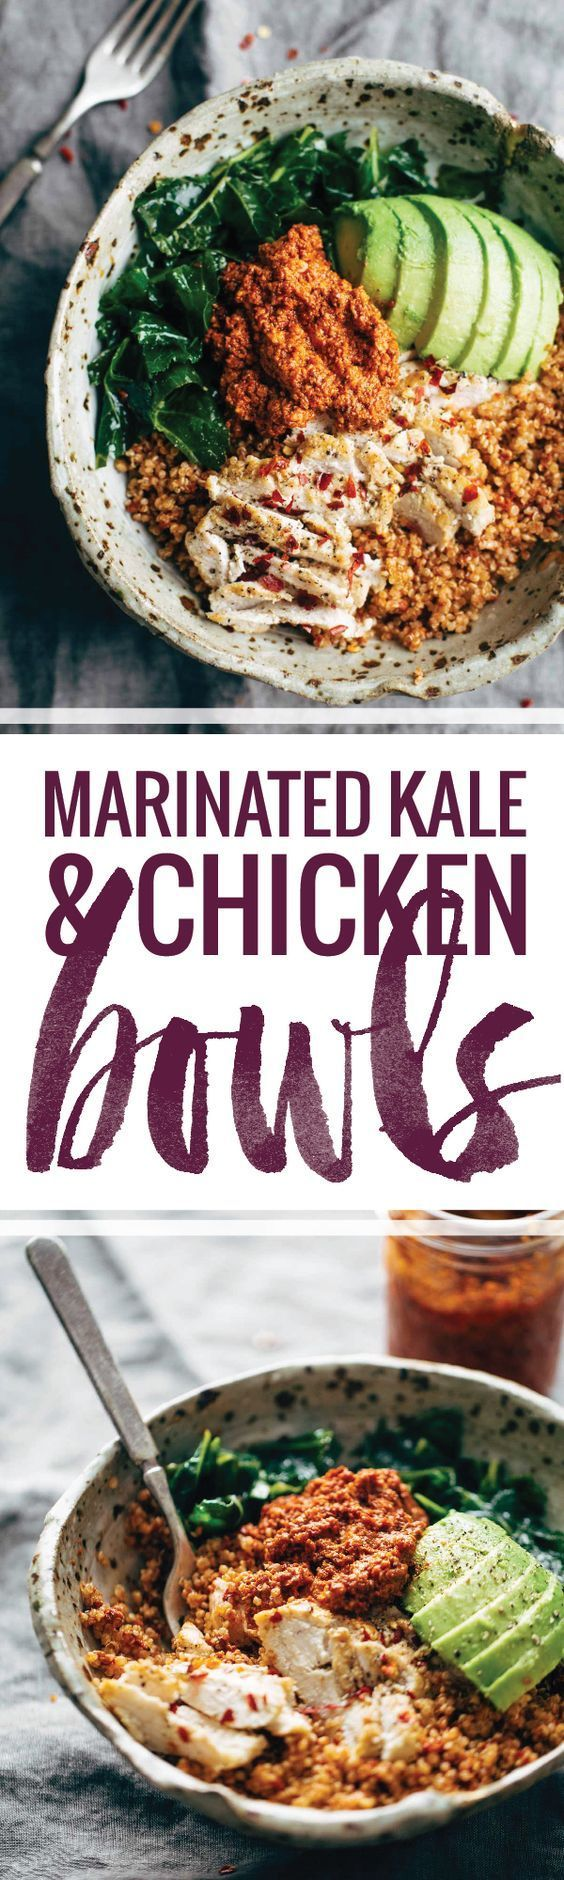 Marinated Kale and Chicken Quinoa Bowl with Sun Dried Tomato Sauce! this recipe is clean, simple, and nutritious!   pinchofyum.com